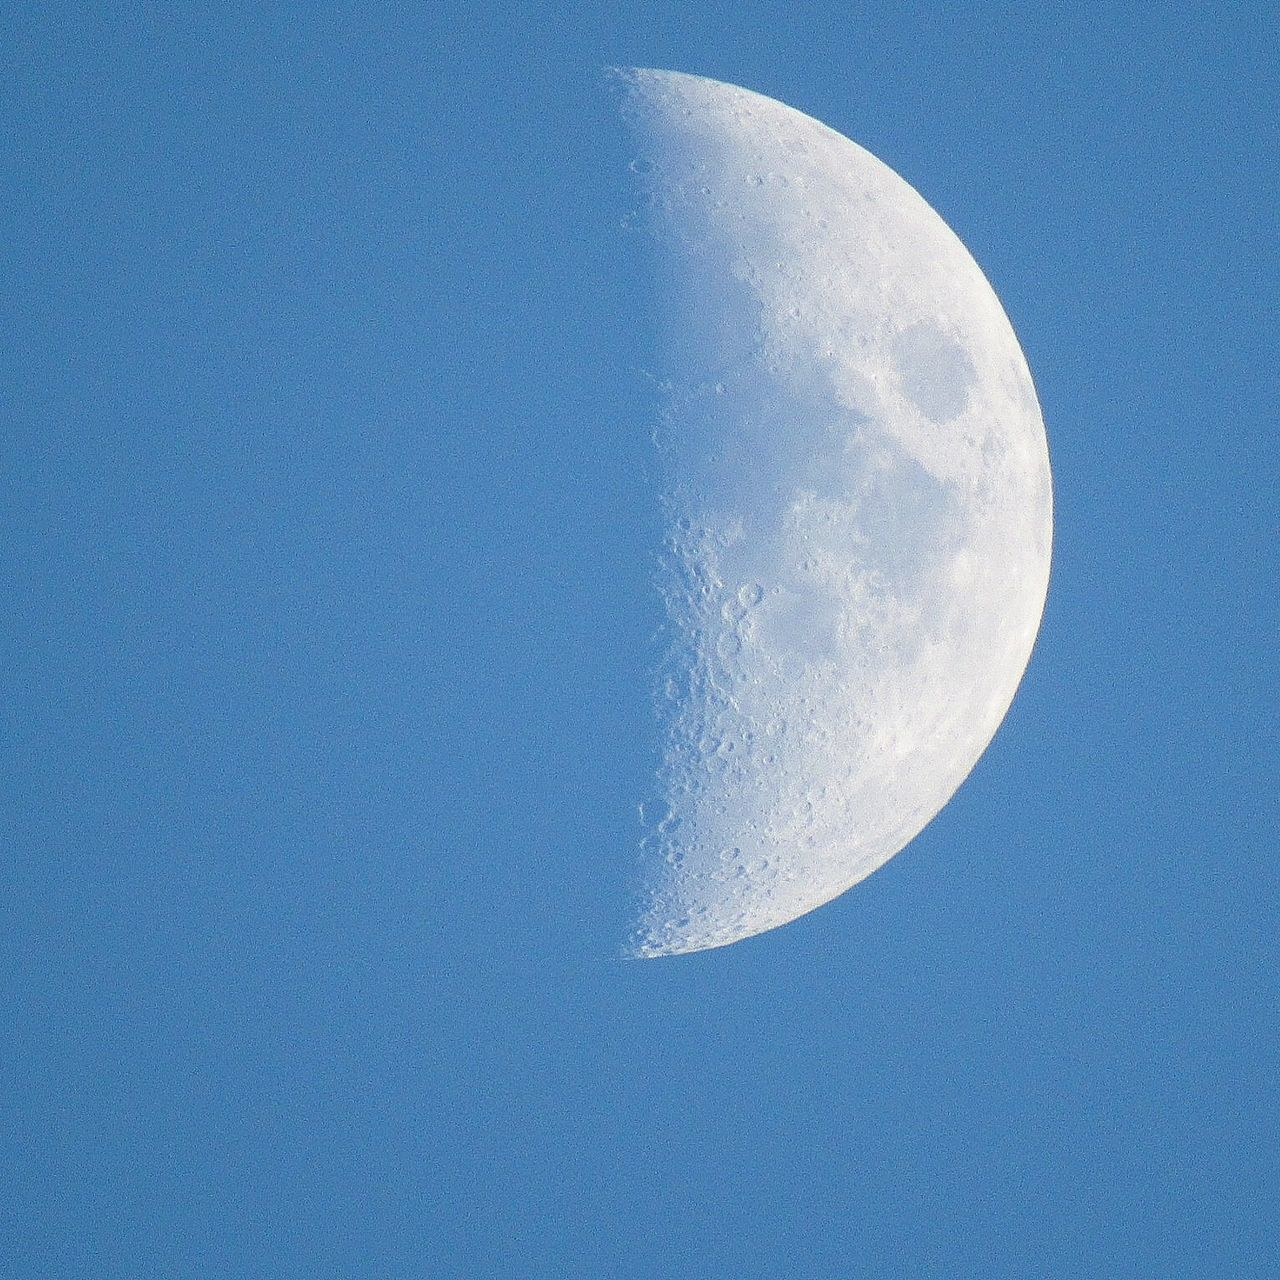 moon, clear sky, low angle view, blue, nature, beauty in nature, copy space, moon surface, tranquil scene, no people, astronomy, half moon, outdoors, tranquility, sky, scenics, day, space exploration, space, crescent